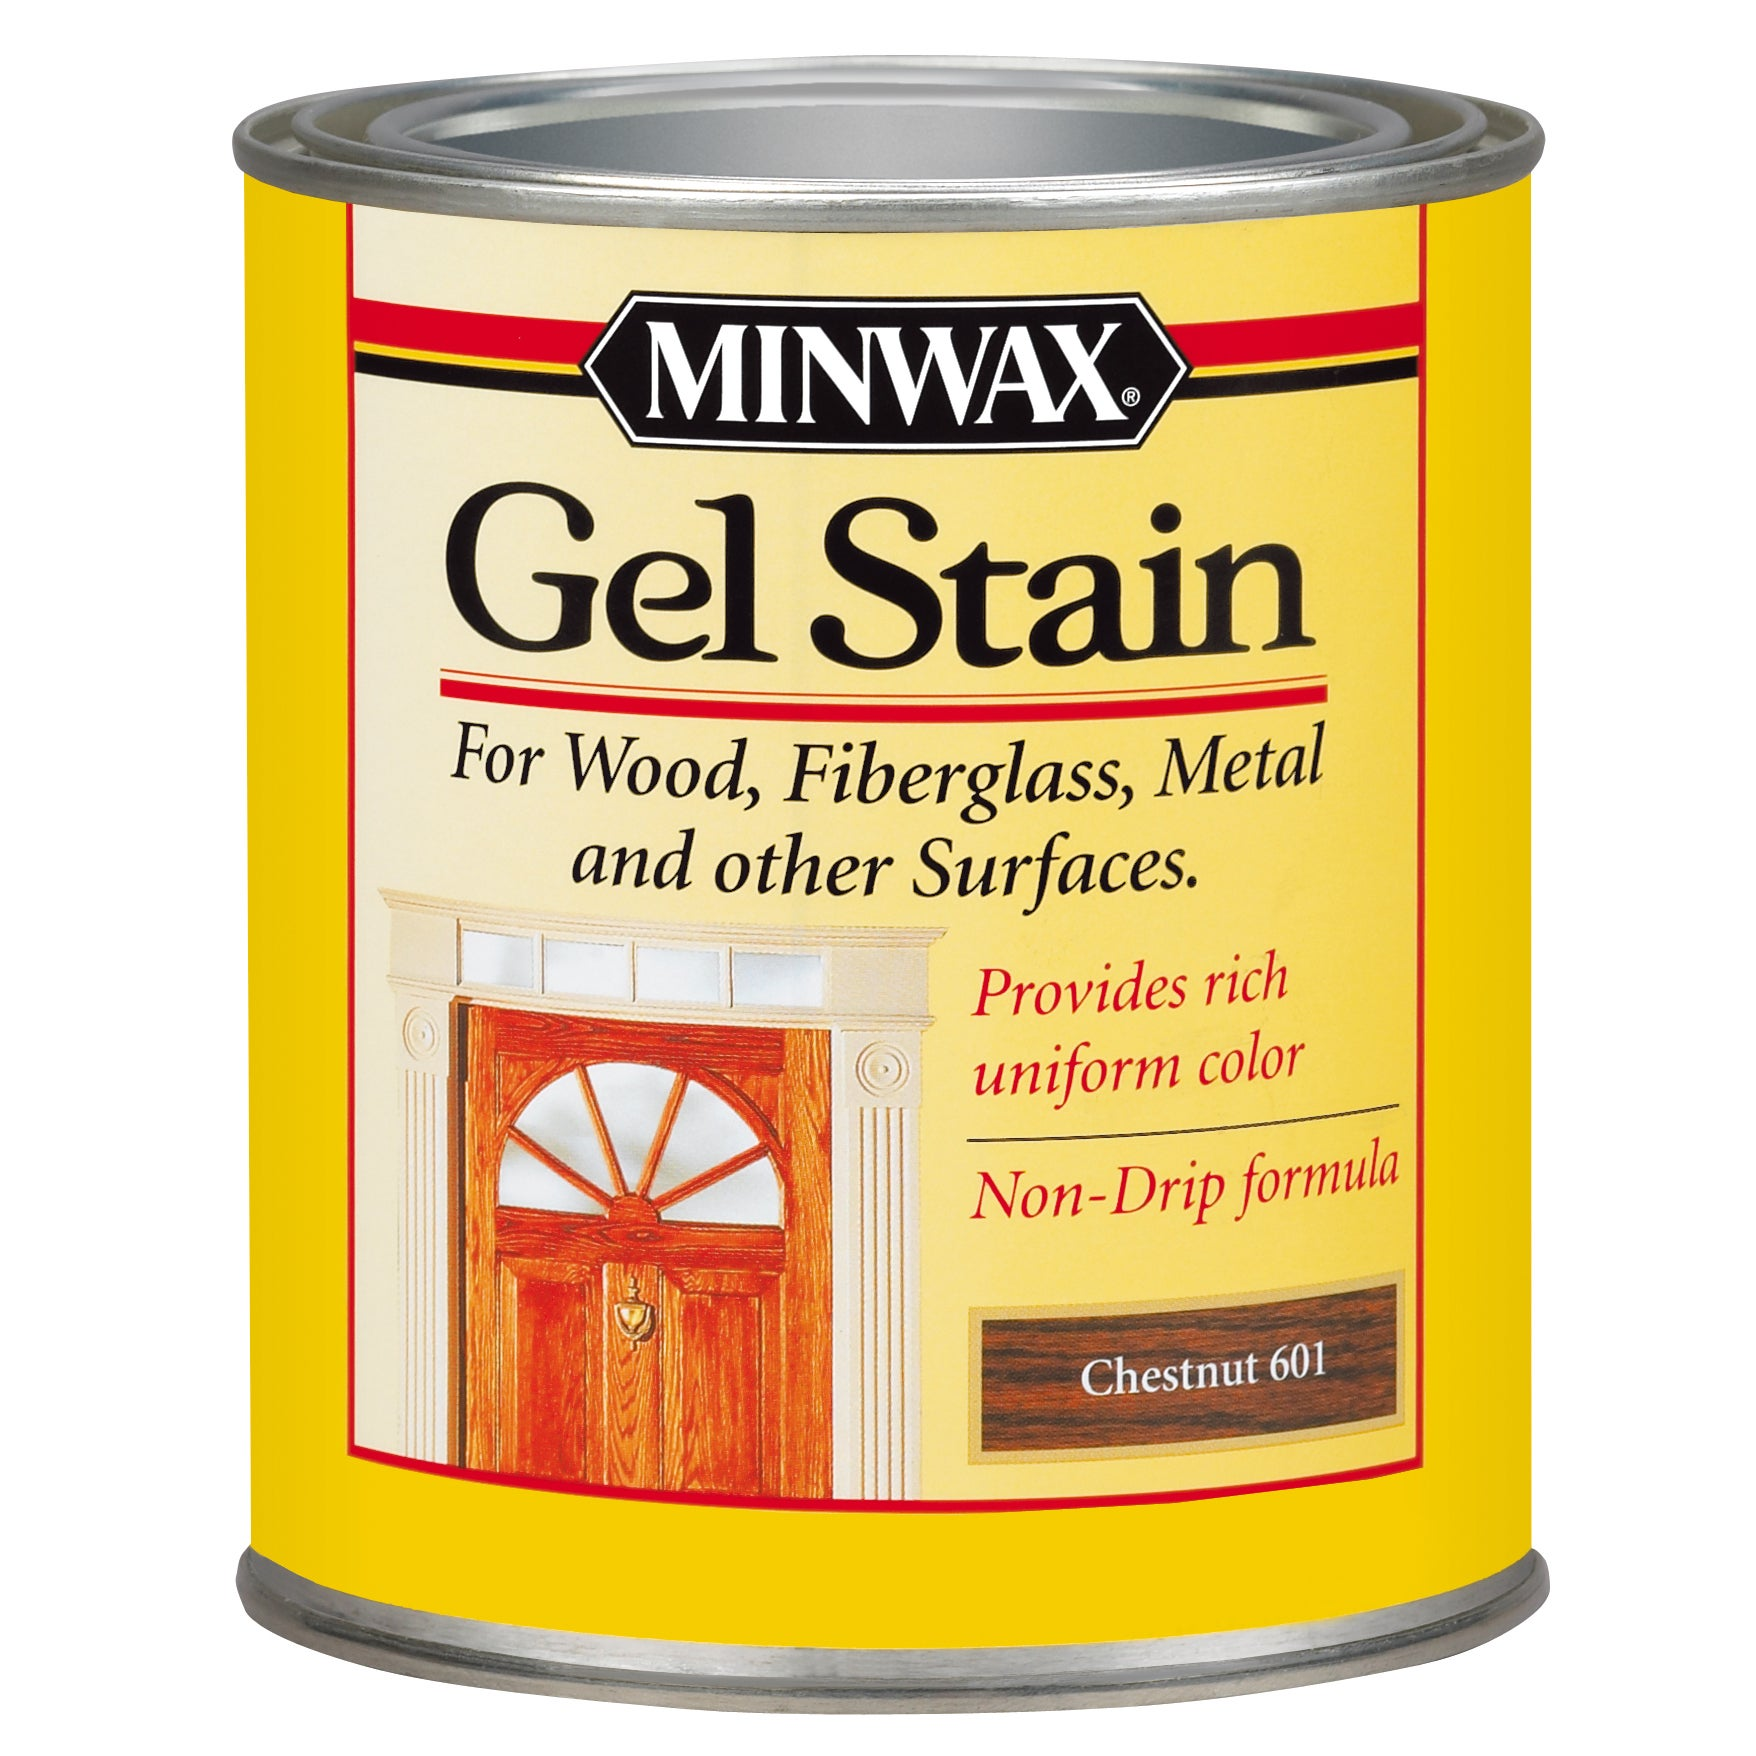 Minwax 66010 1 Quart Chestnut Gel Stain Interior Wood (Interior Stains)